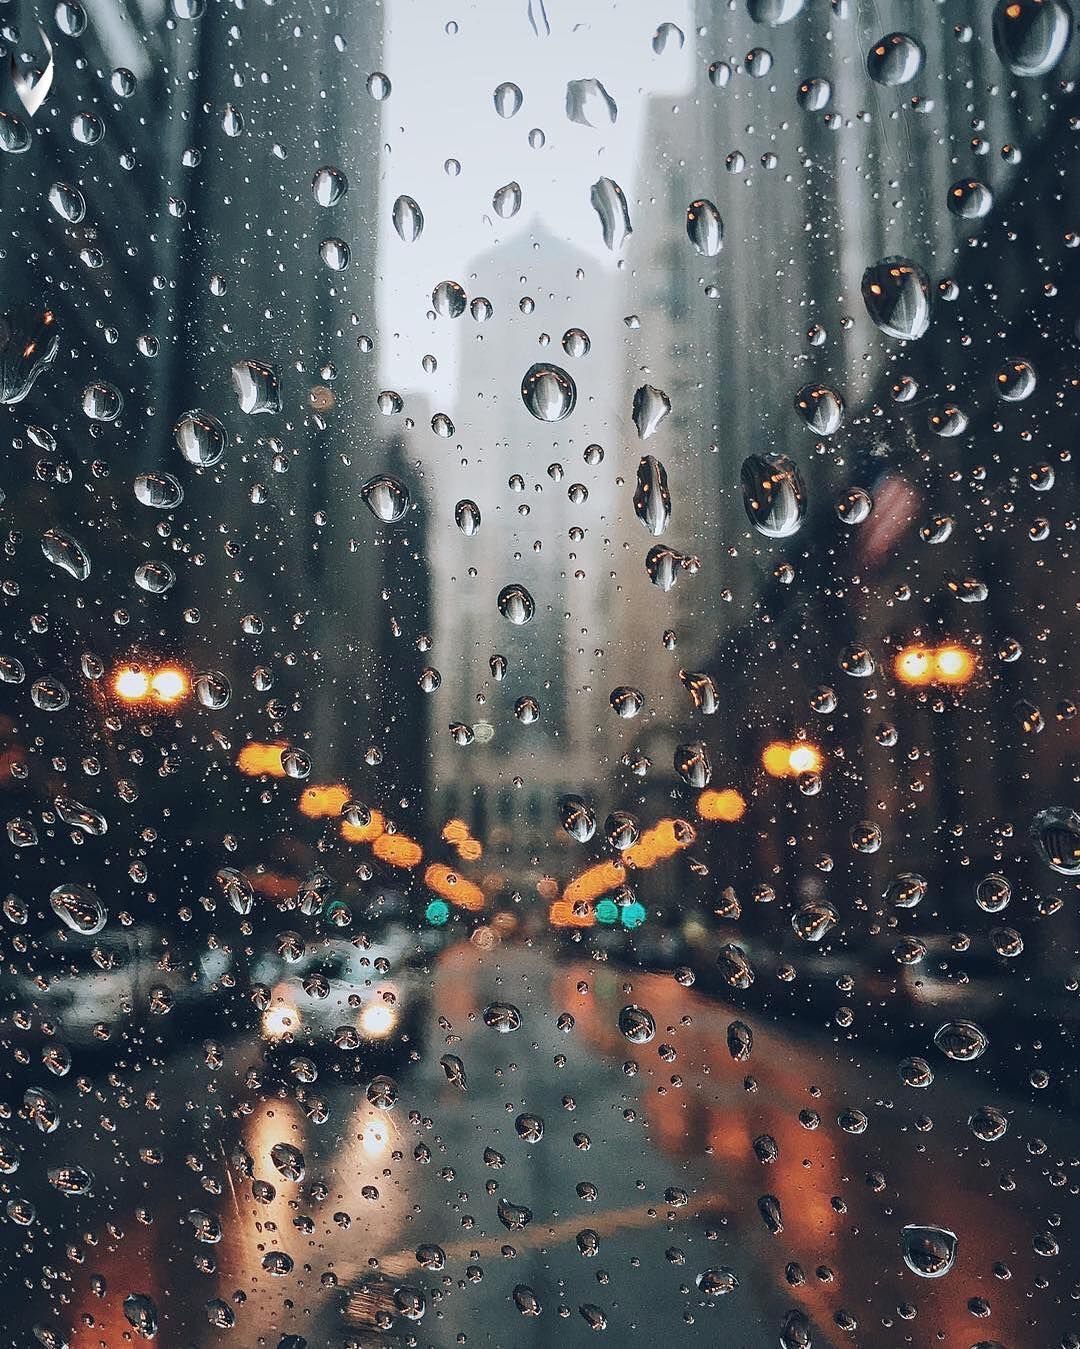 Rainy Day Wallpaper: Pin By Anita Khan On Light And Composition